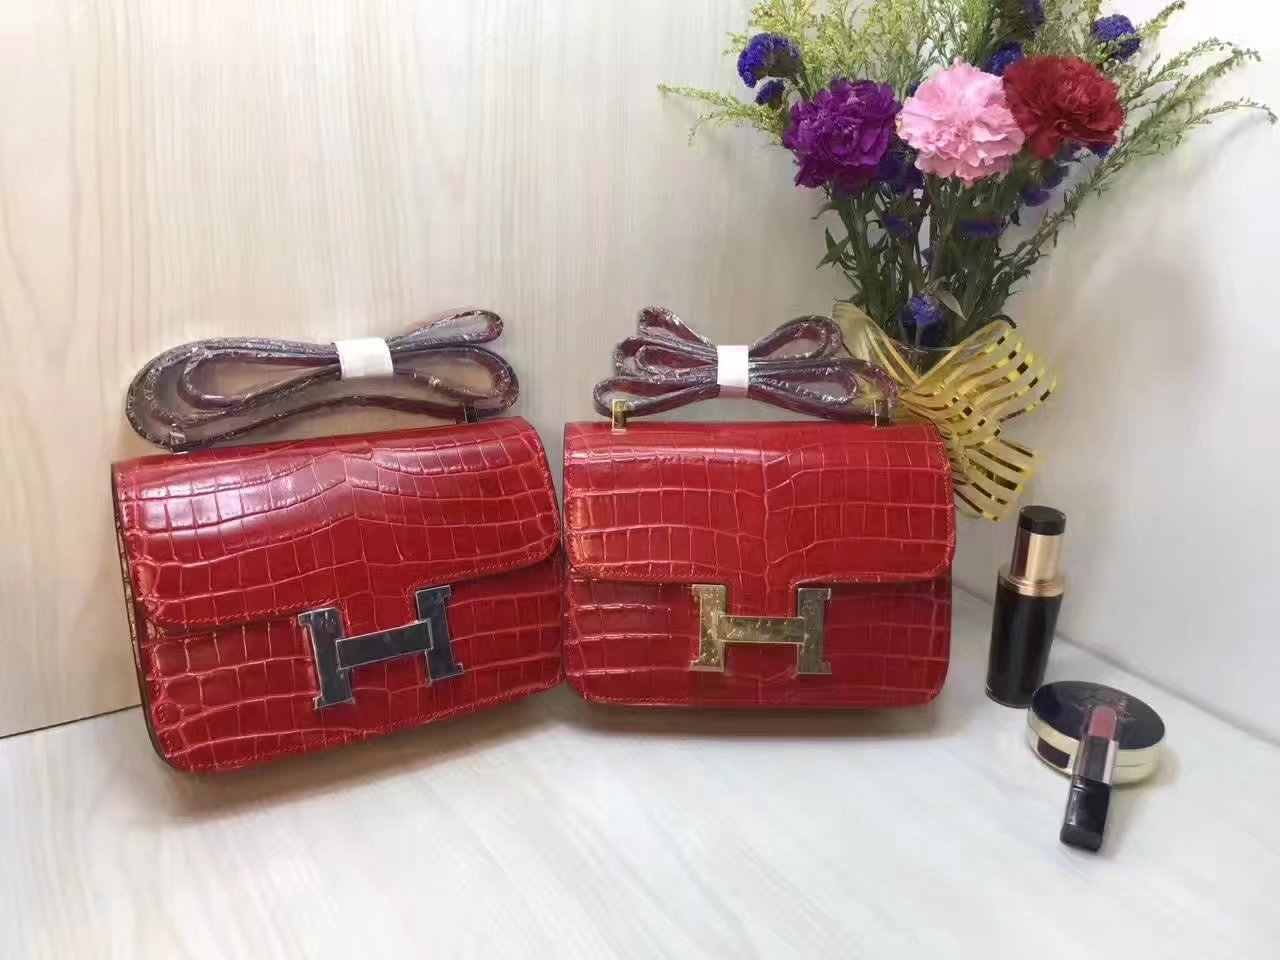 Hermes 23cm Constance Shoulder Bag Crocodile Stripe Red With Gold And Silver